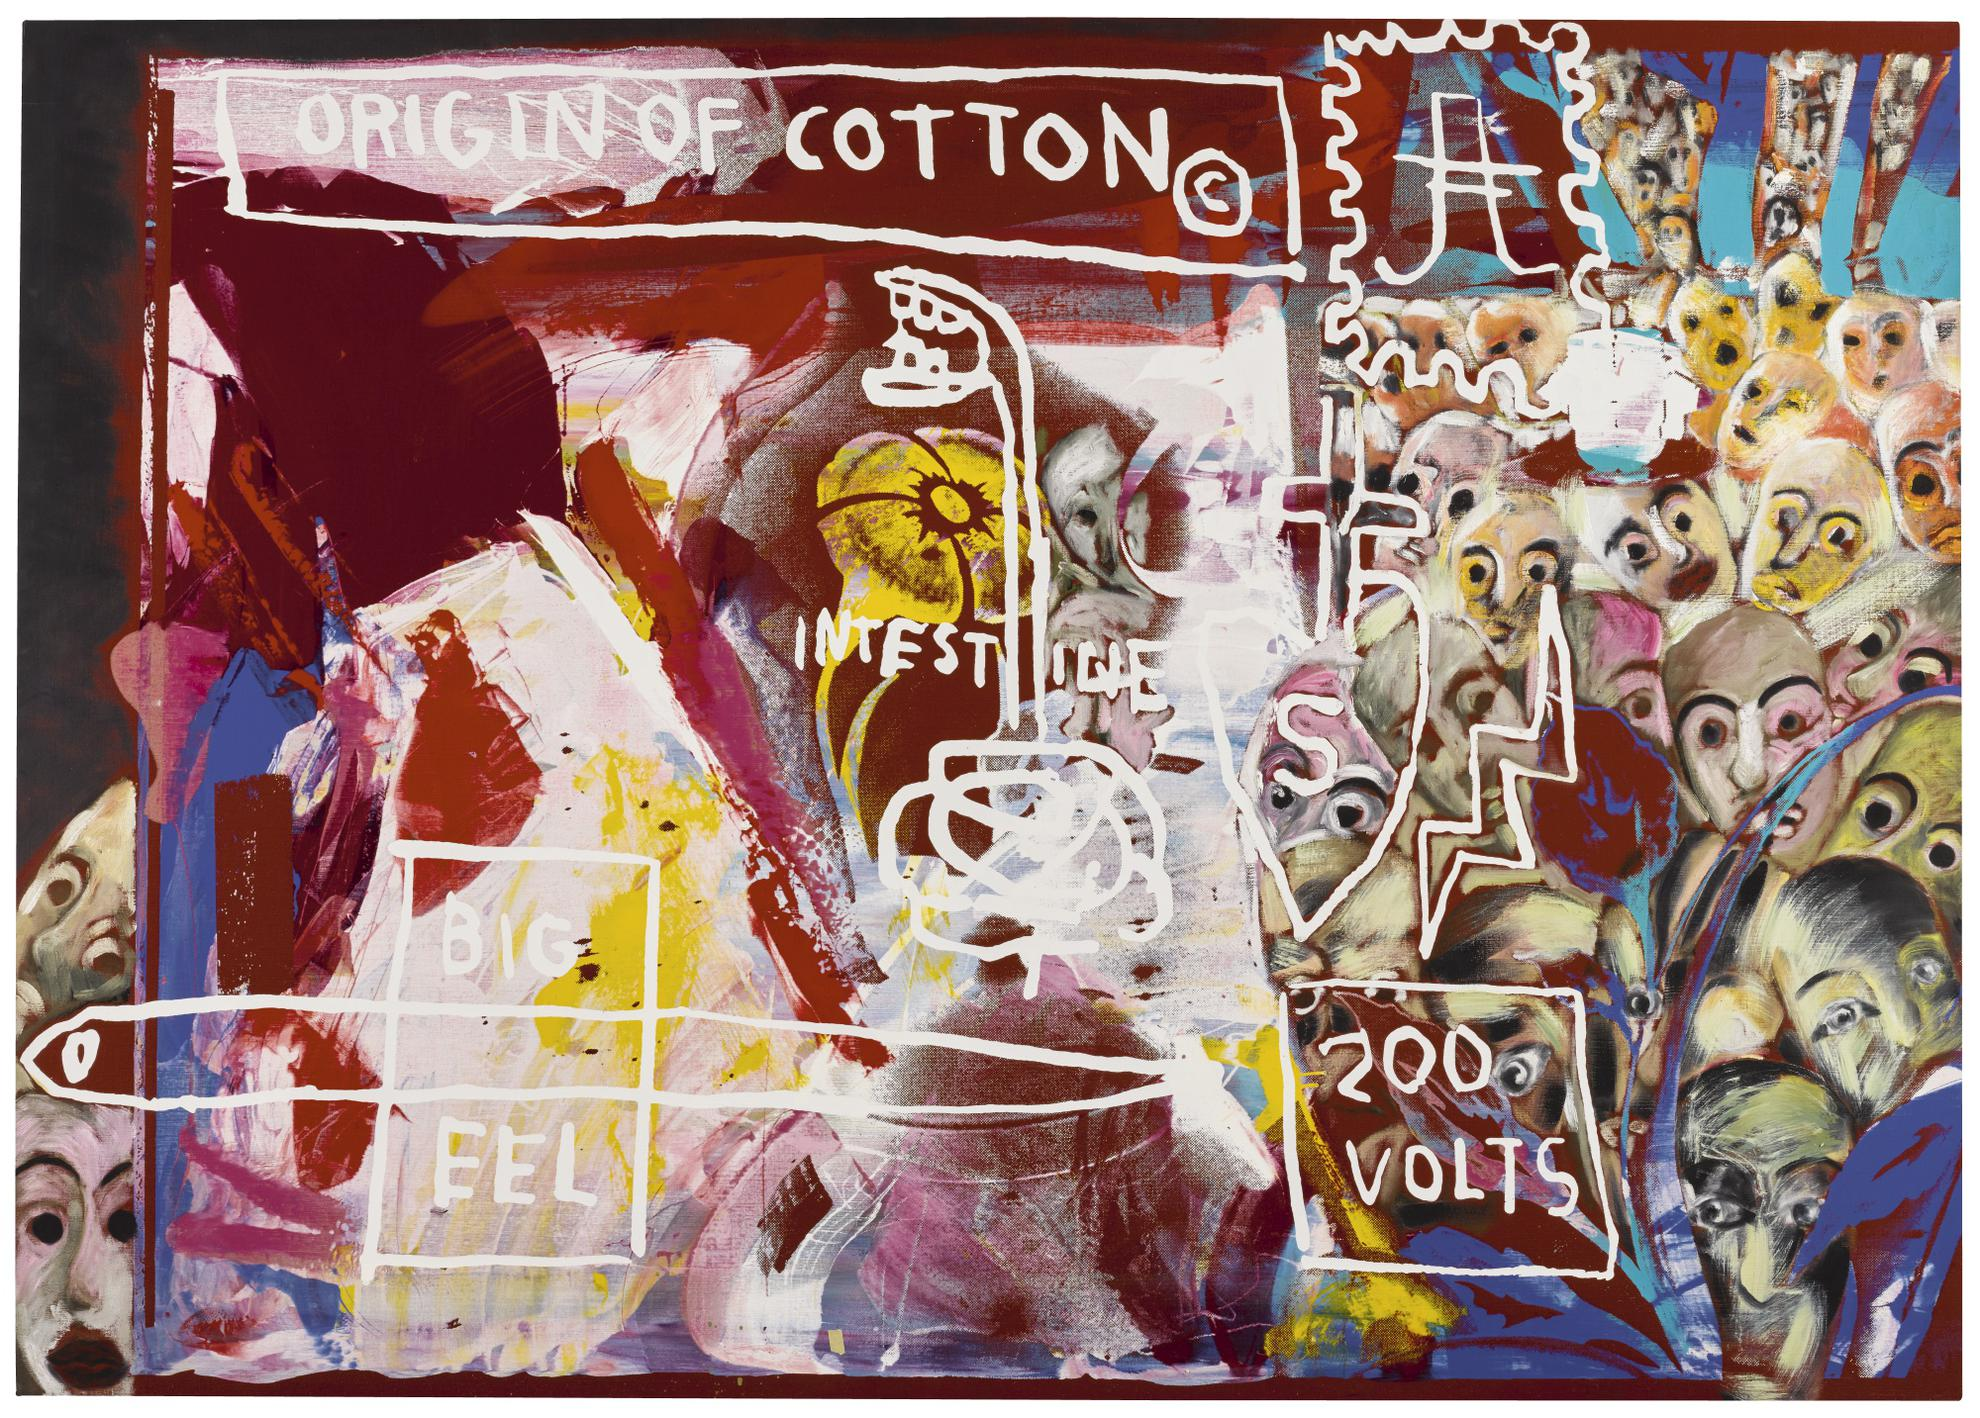 Jean-Michel Basquiat Francesco Clemente And Andy Warhol - Origin Of Cotton-1984